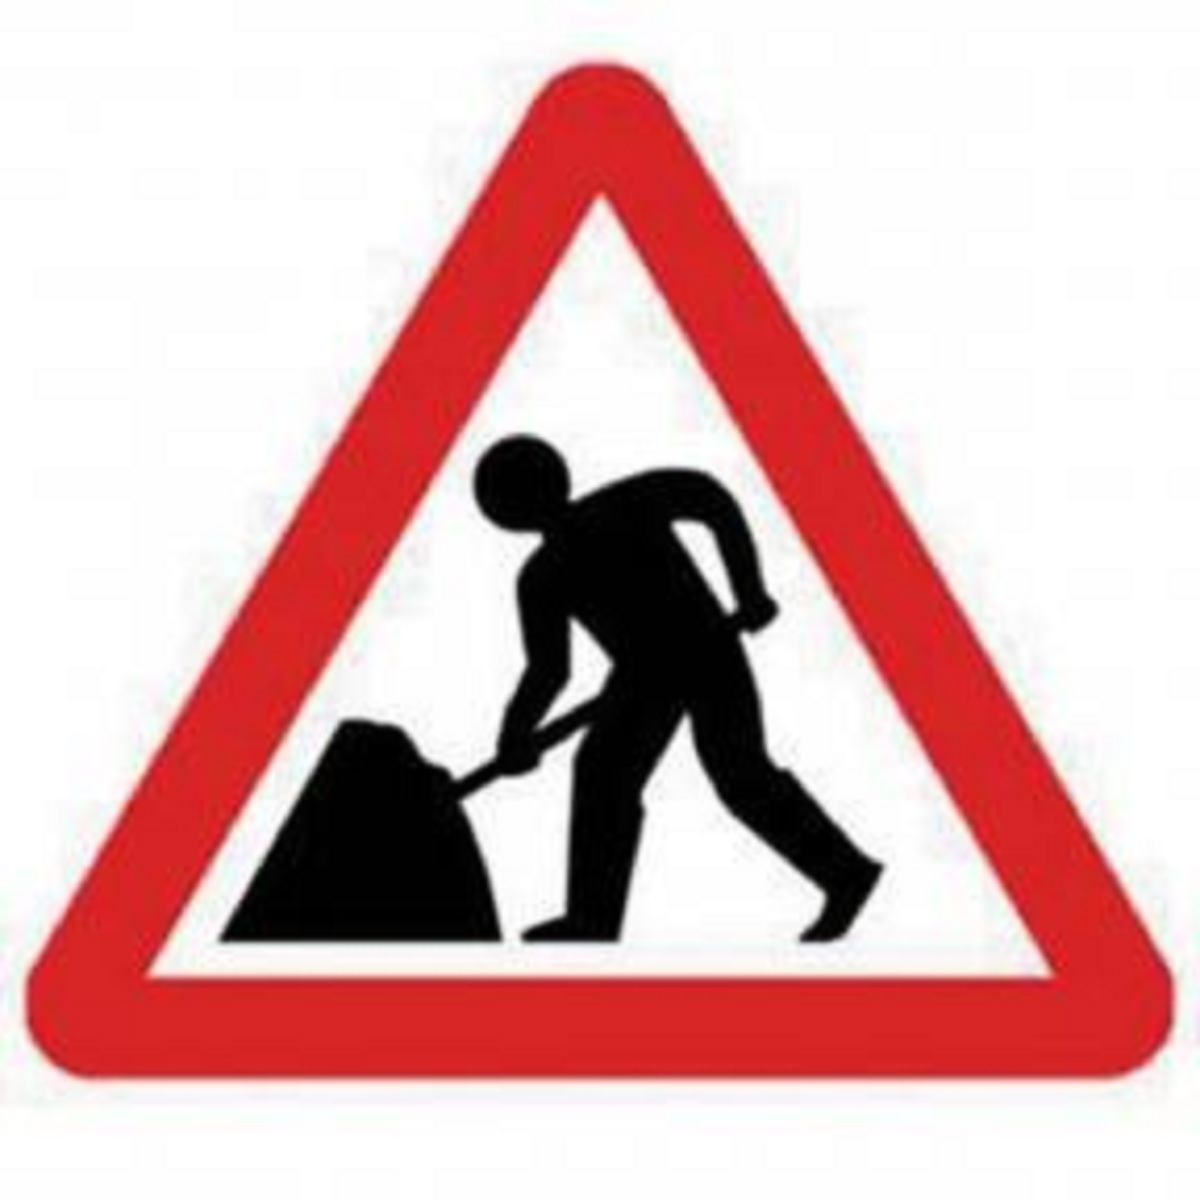 Delays warning for Barrowford roadworks